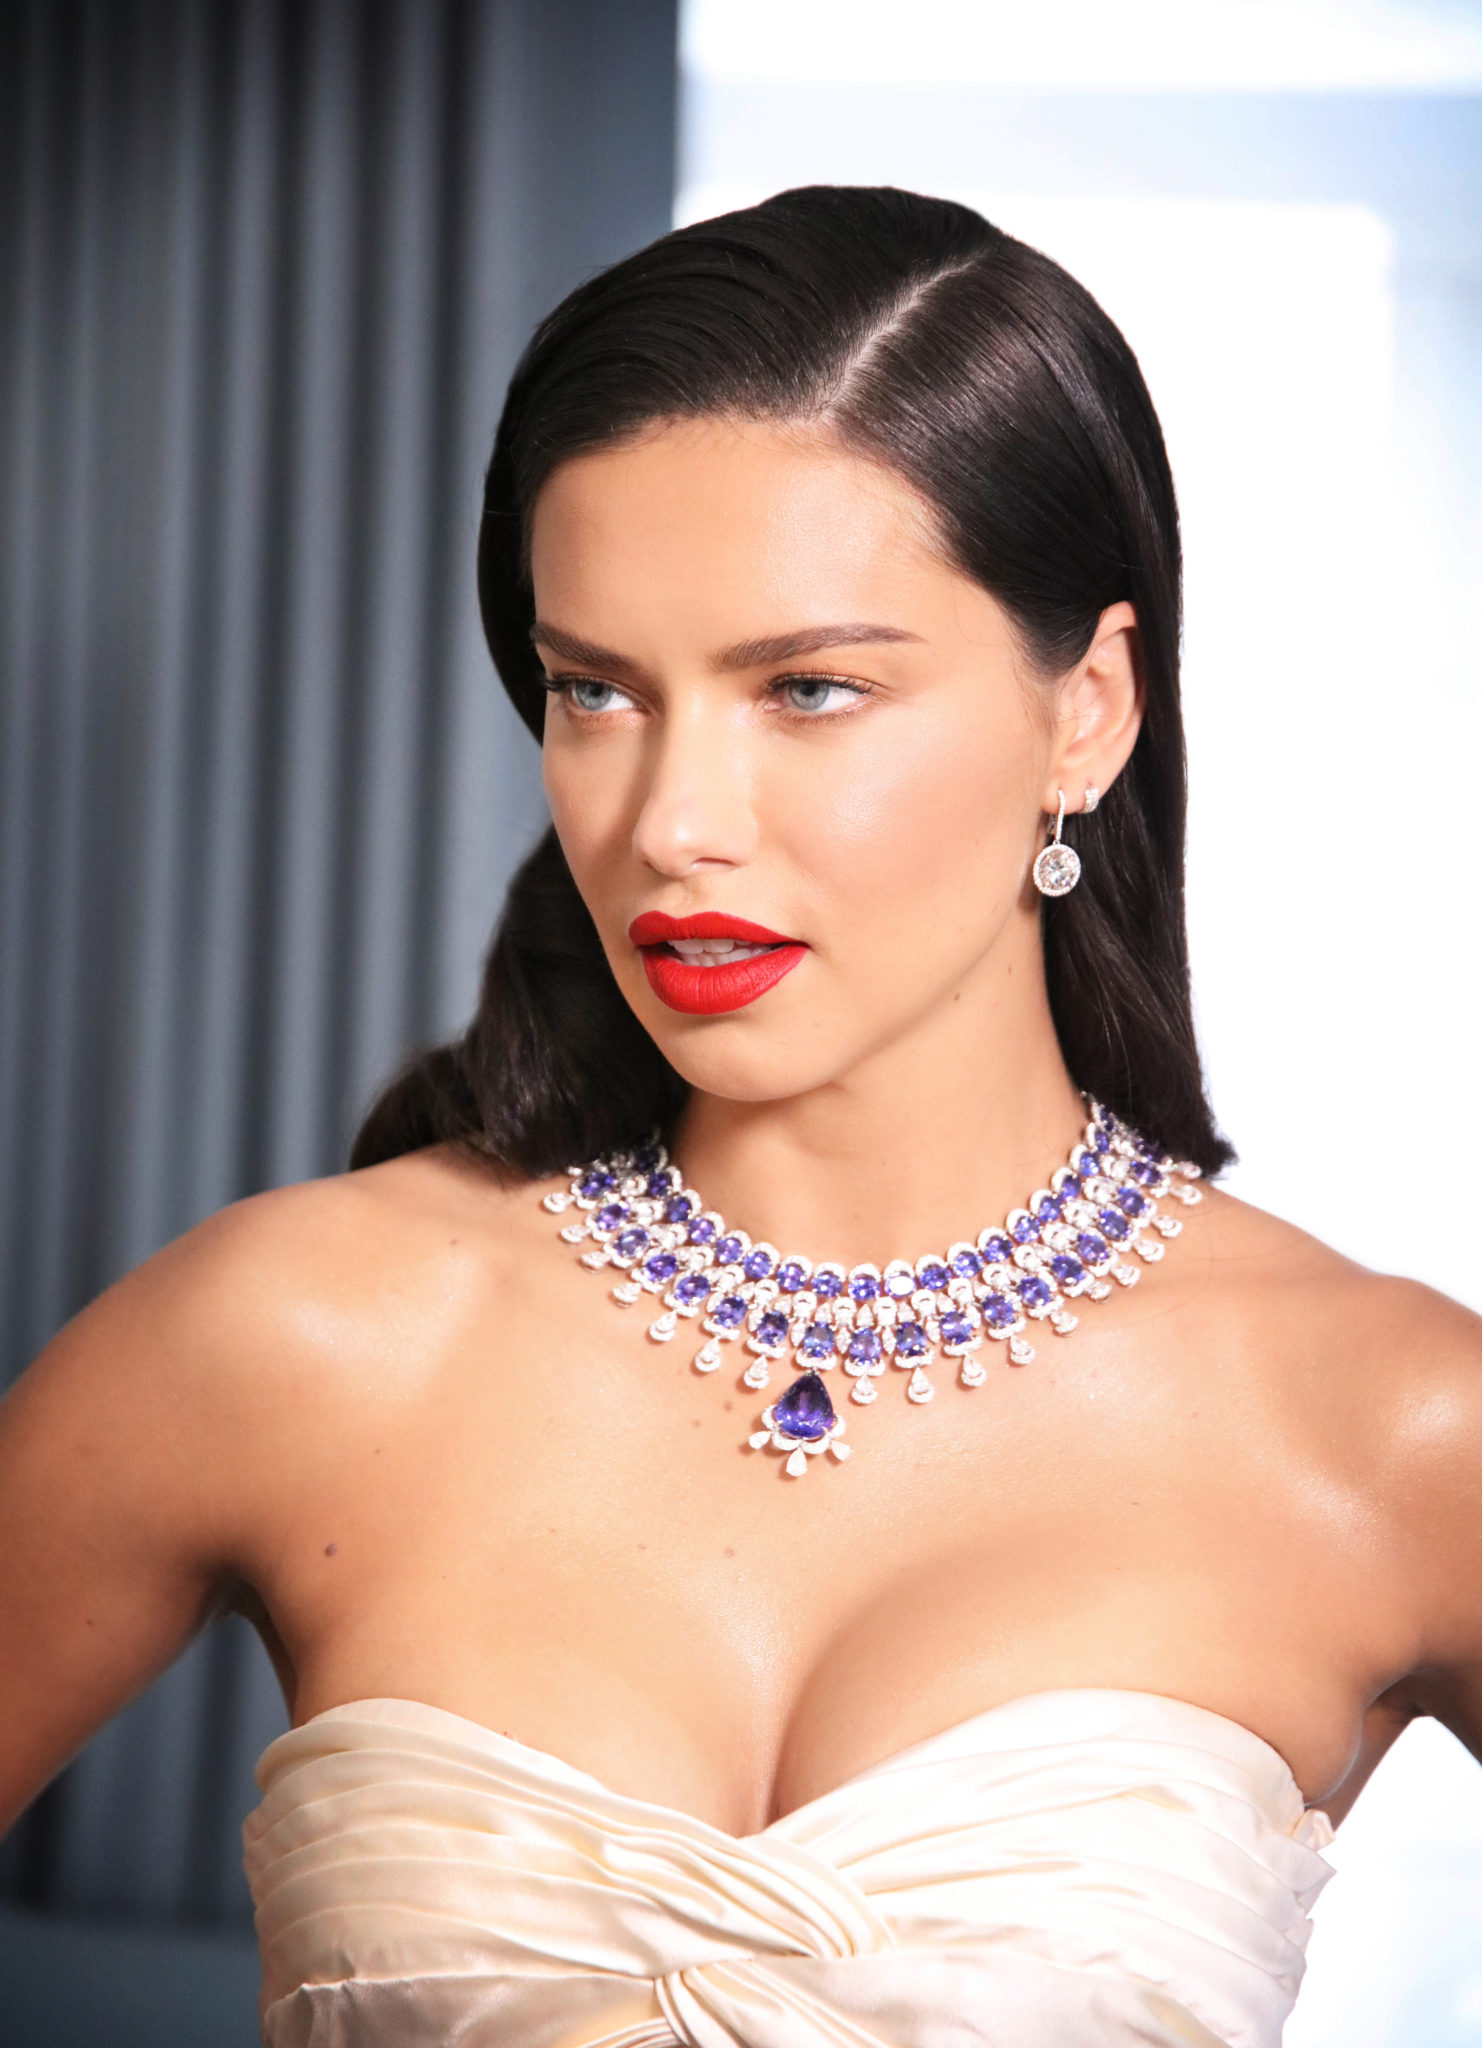 Adriana Lima featuring the Red Carpet Collection (3)